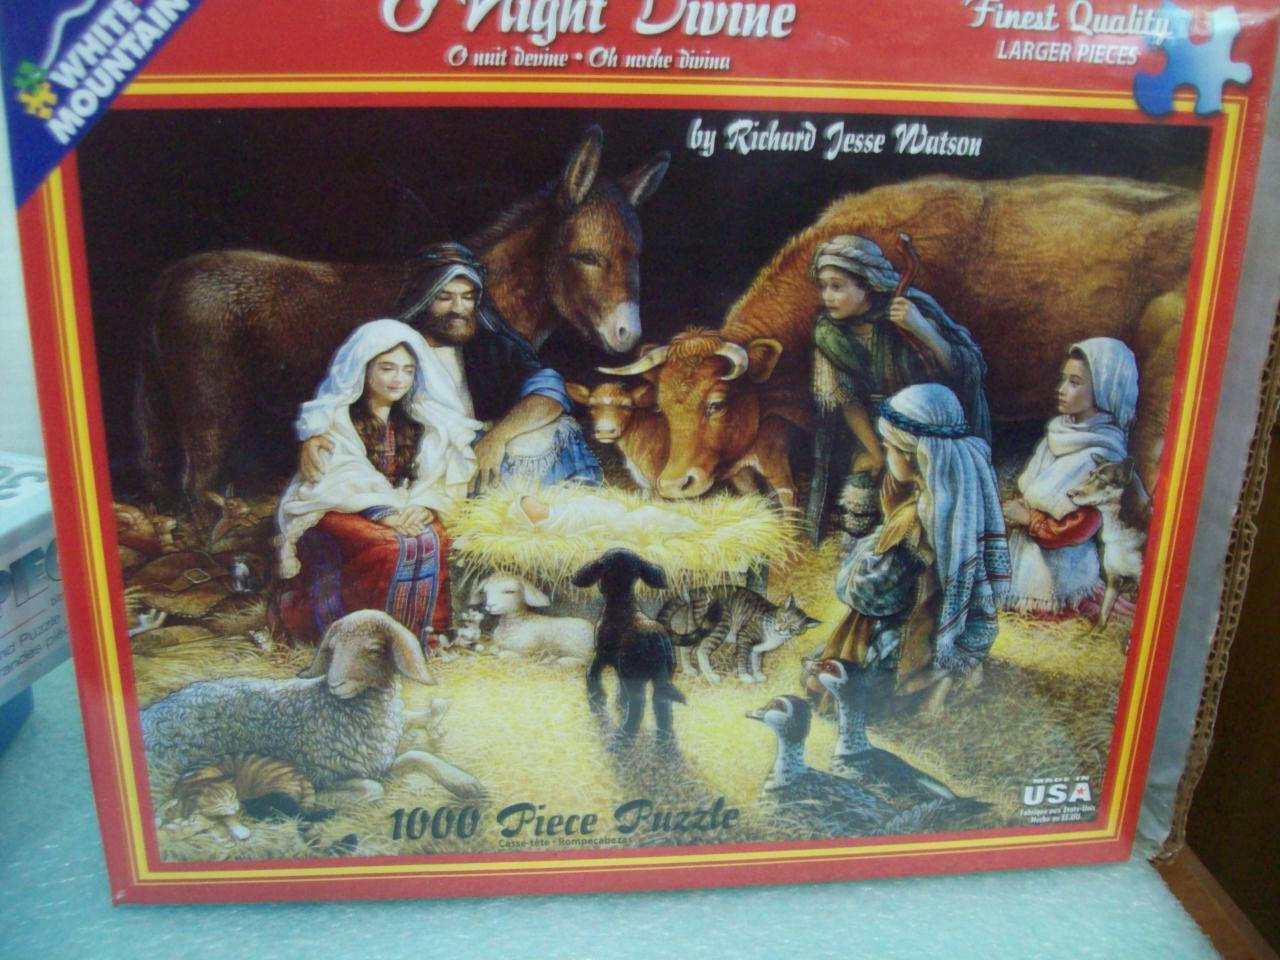 New O NIGHT DIVINE Jigsaw Puzzle 1000 Pc White Mountain Puzzles Sealed In Box